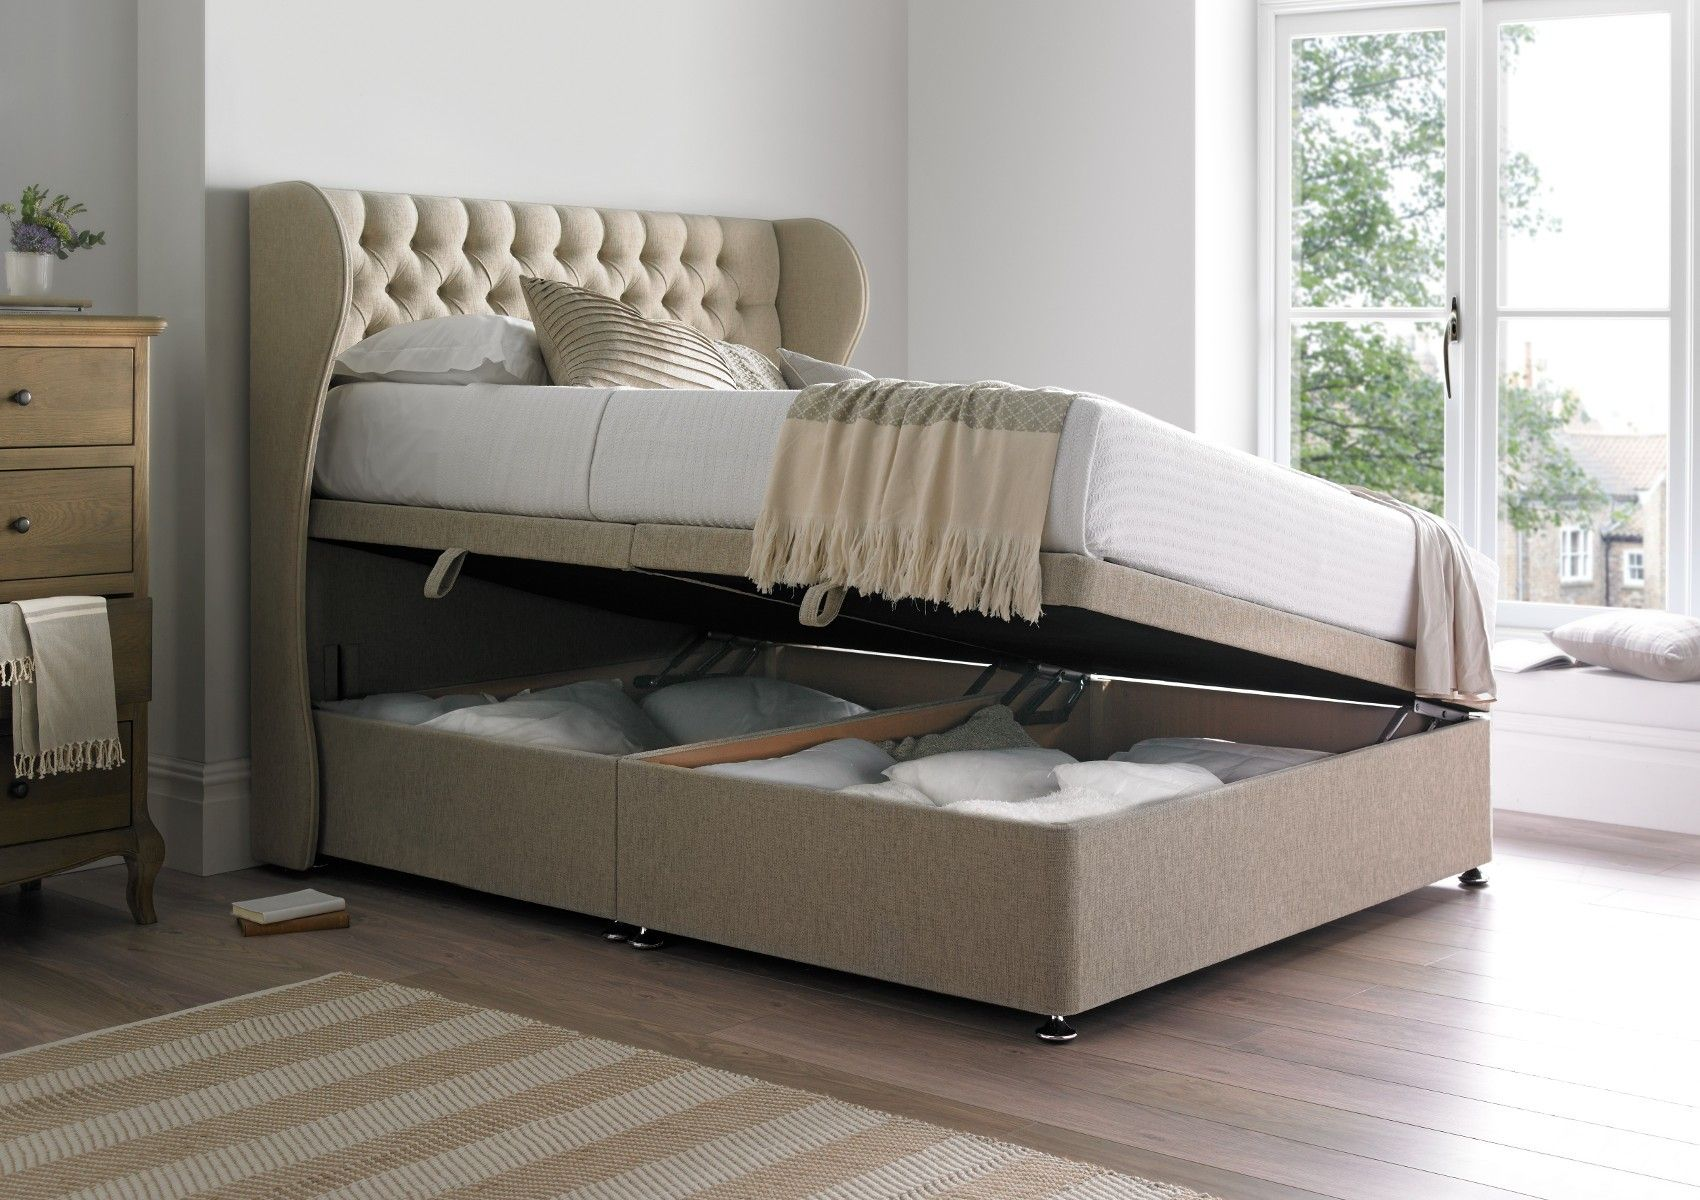 Healthopaedic Ottoman Storage Bed Base - Ottoman Beds - Beds